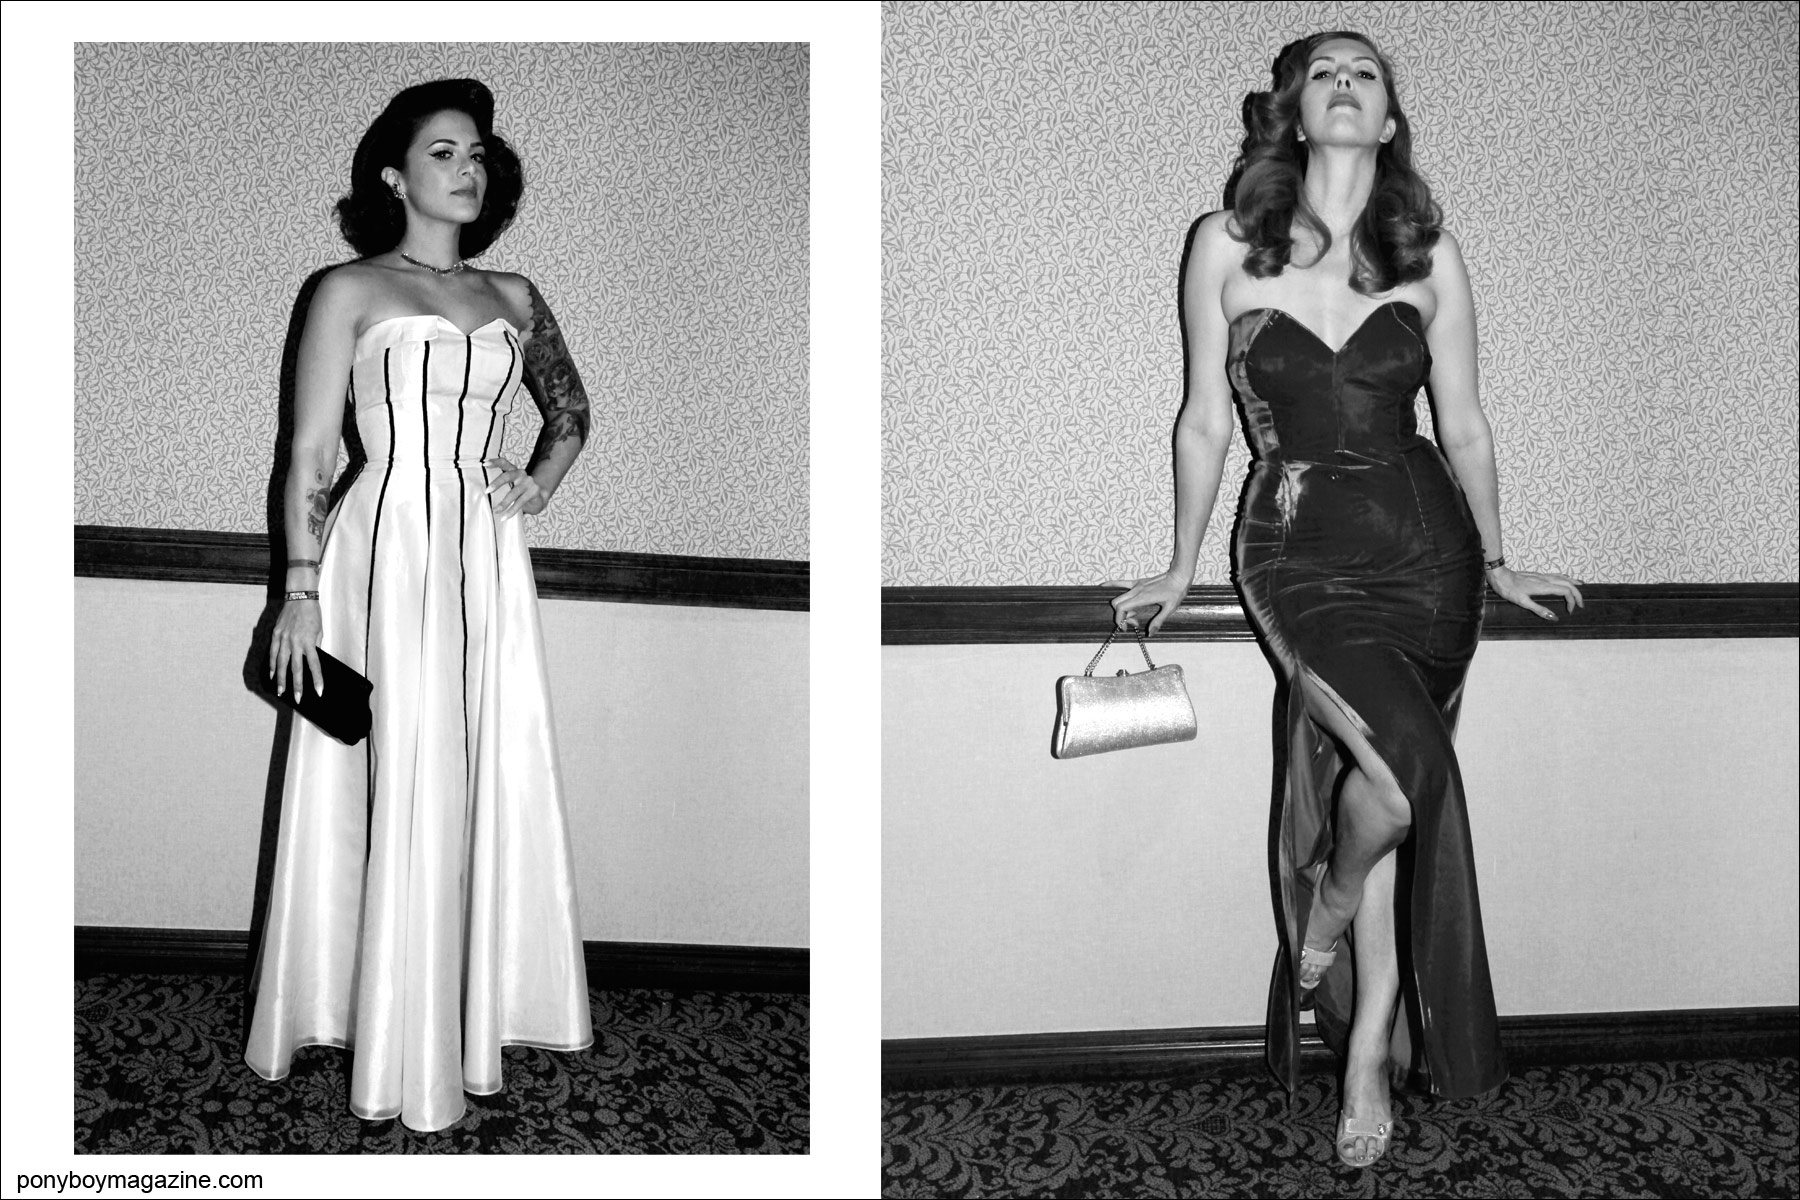 Elegant 1950's gowns photographed by Alexander Thompson at Viva Las Vegas rockabilly weekender for Ponyboy Magazine.